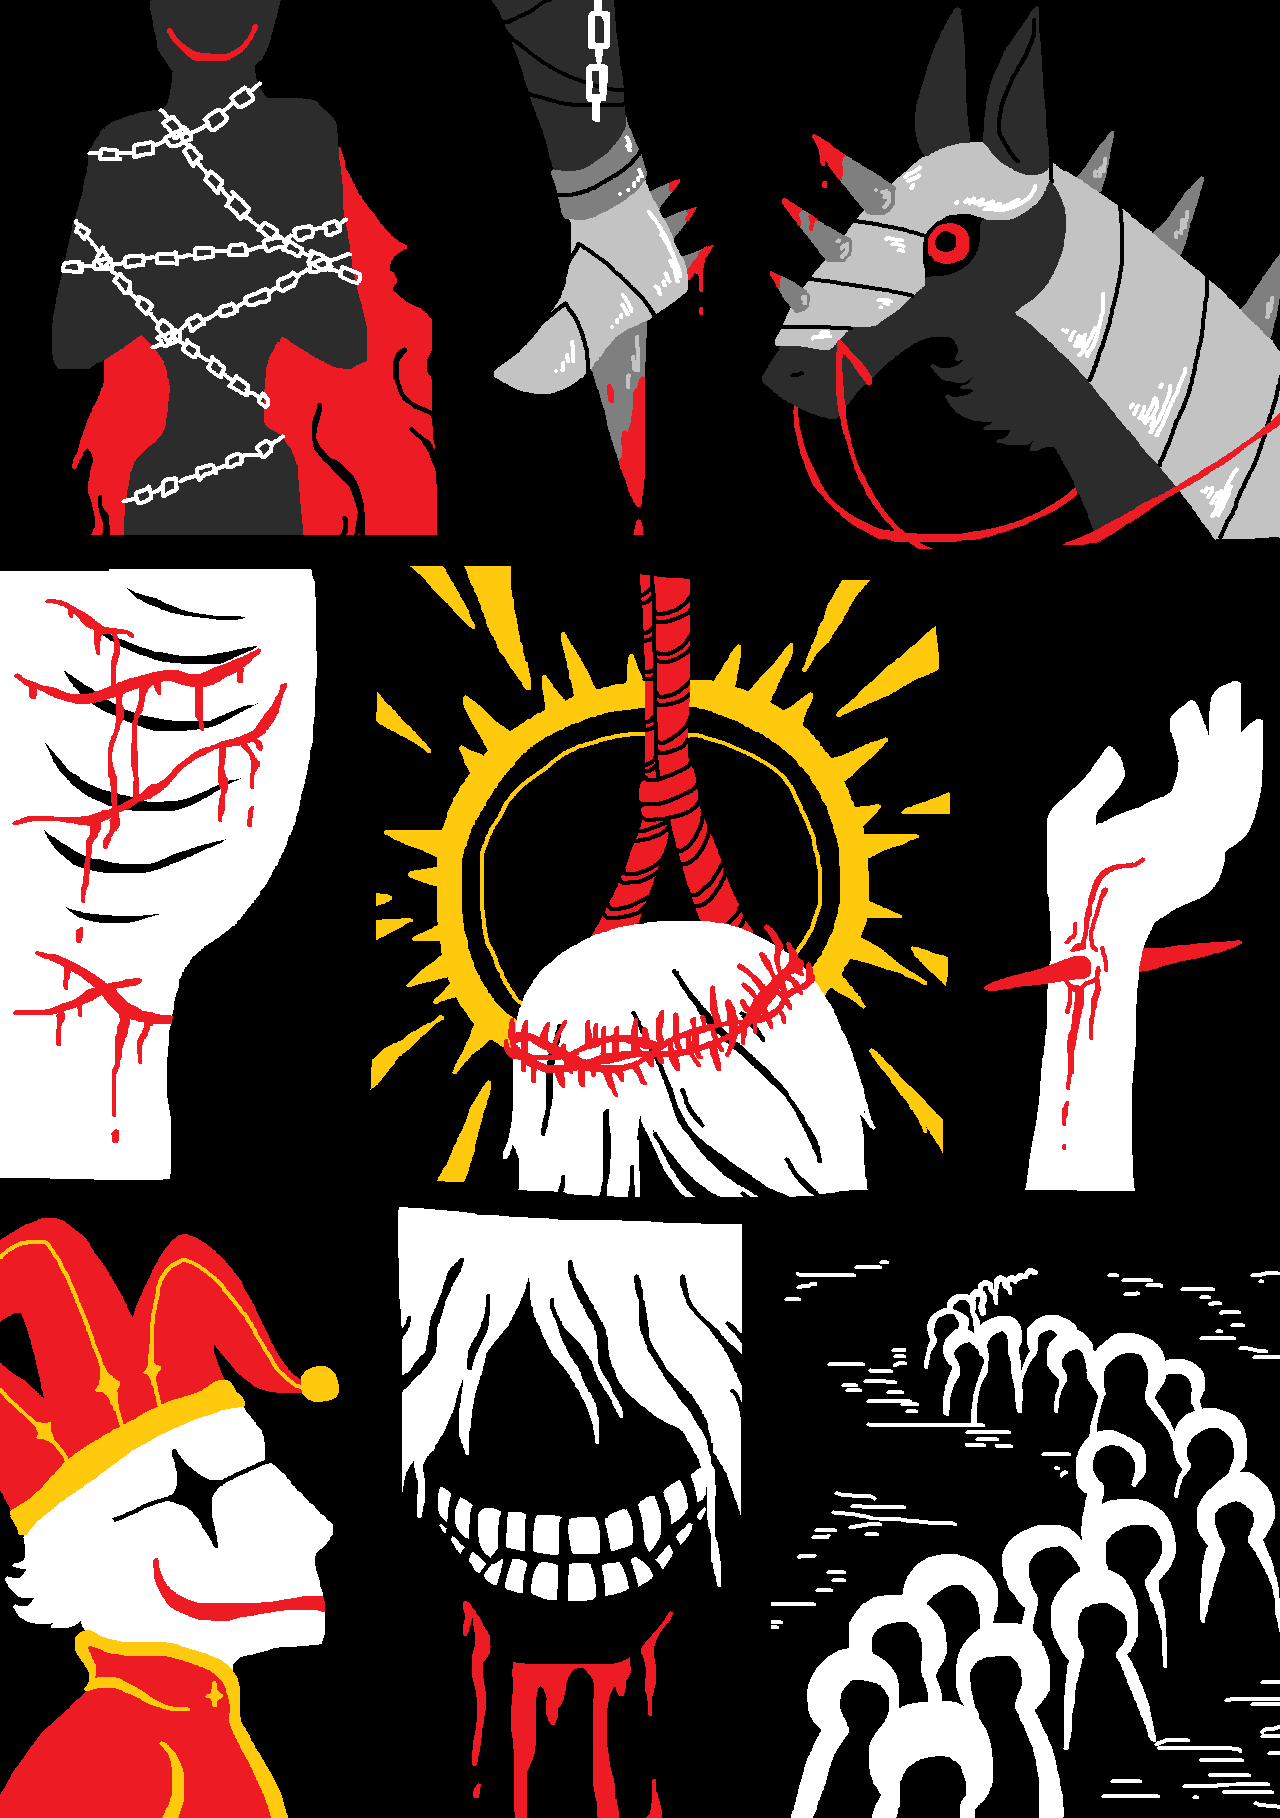 SCP-4505 - A Brief History of Anomalous Artwork (Trinity of the Red Court, MS Paint)